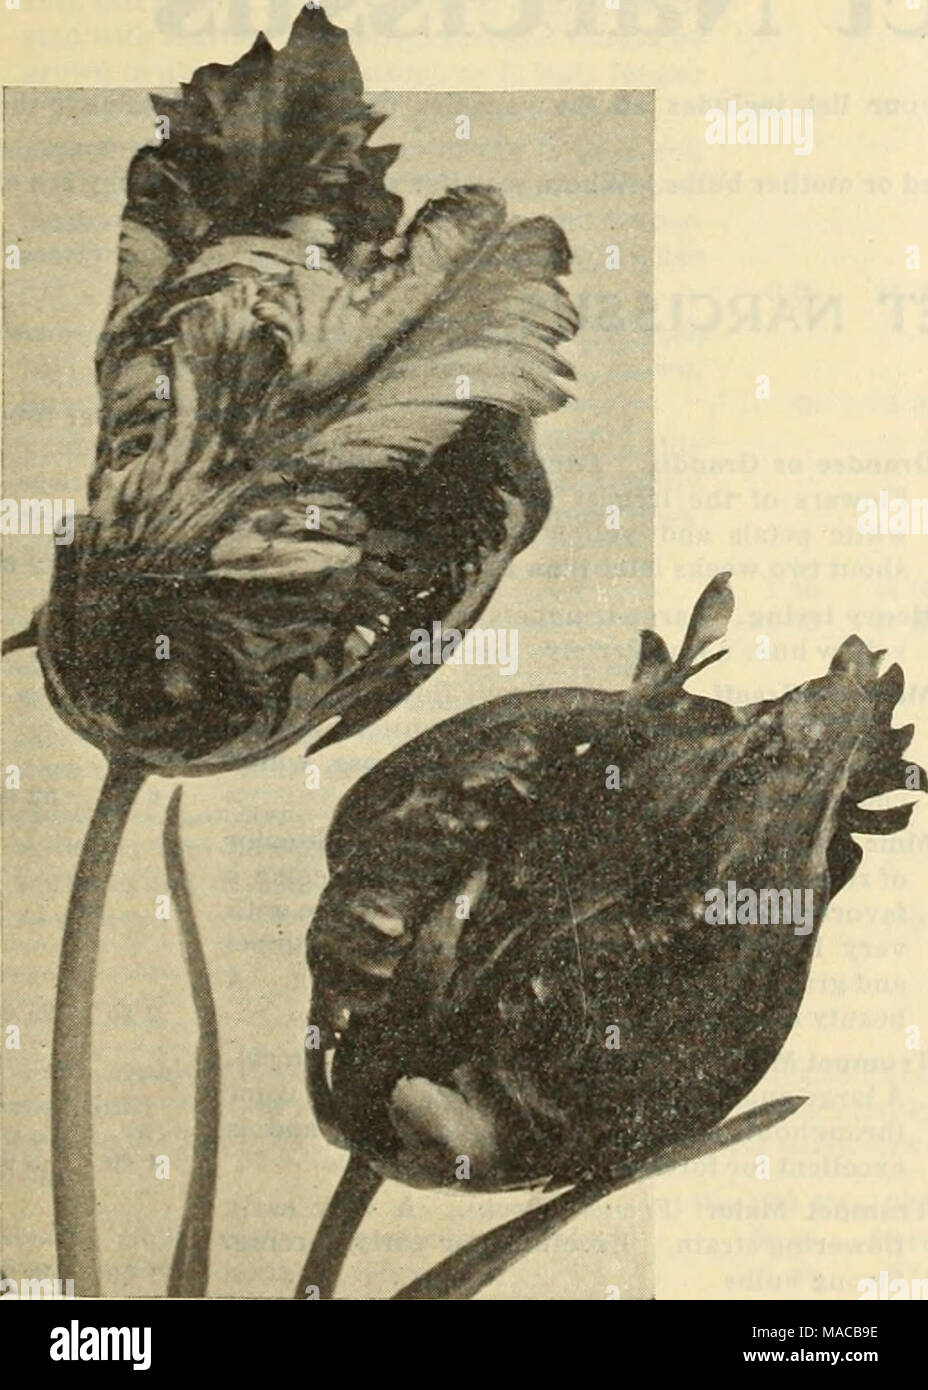 Cheap price of flowers stock photos cheap price of flowers stock dreers wholesale price list bulbs for florists plants for florists flower seeds for florists izmirmasajfo